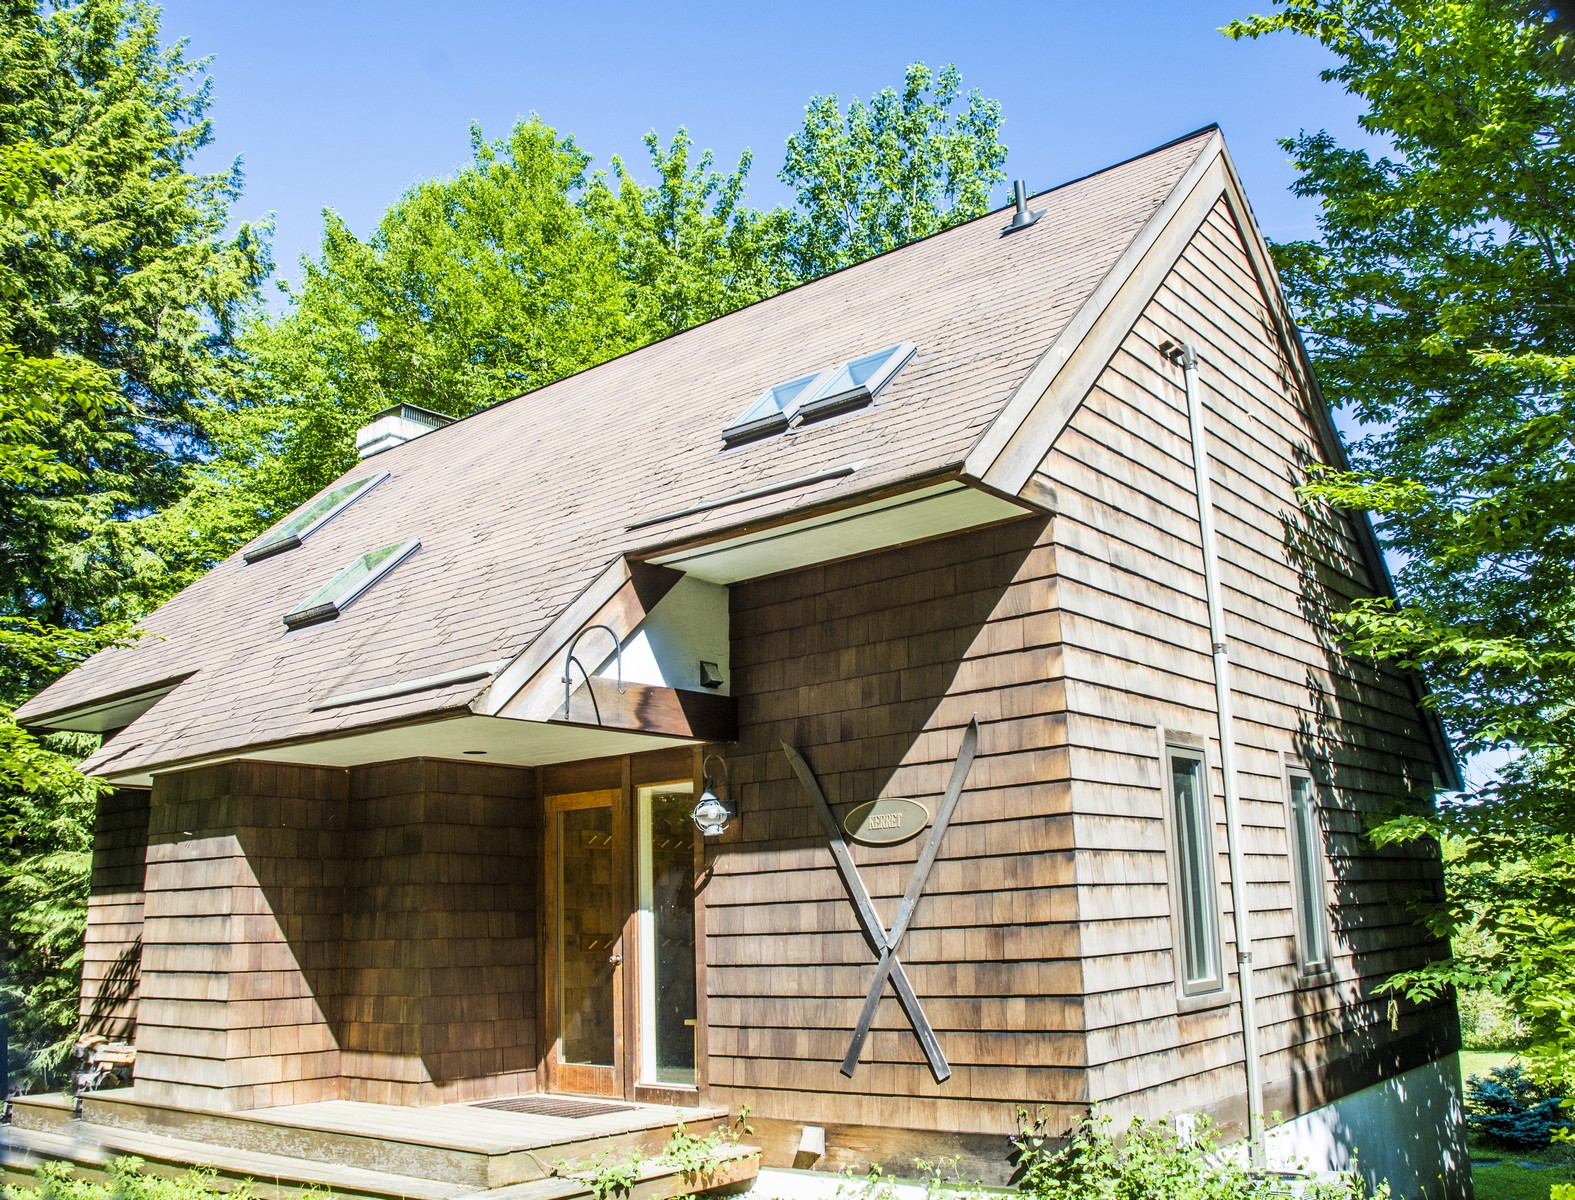 Single Family Home for Sale at 1 Todd Hill Road, Winhall 1 Todd Hill Rd Winhall, Vermont, 05340 United States